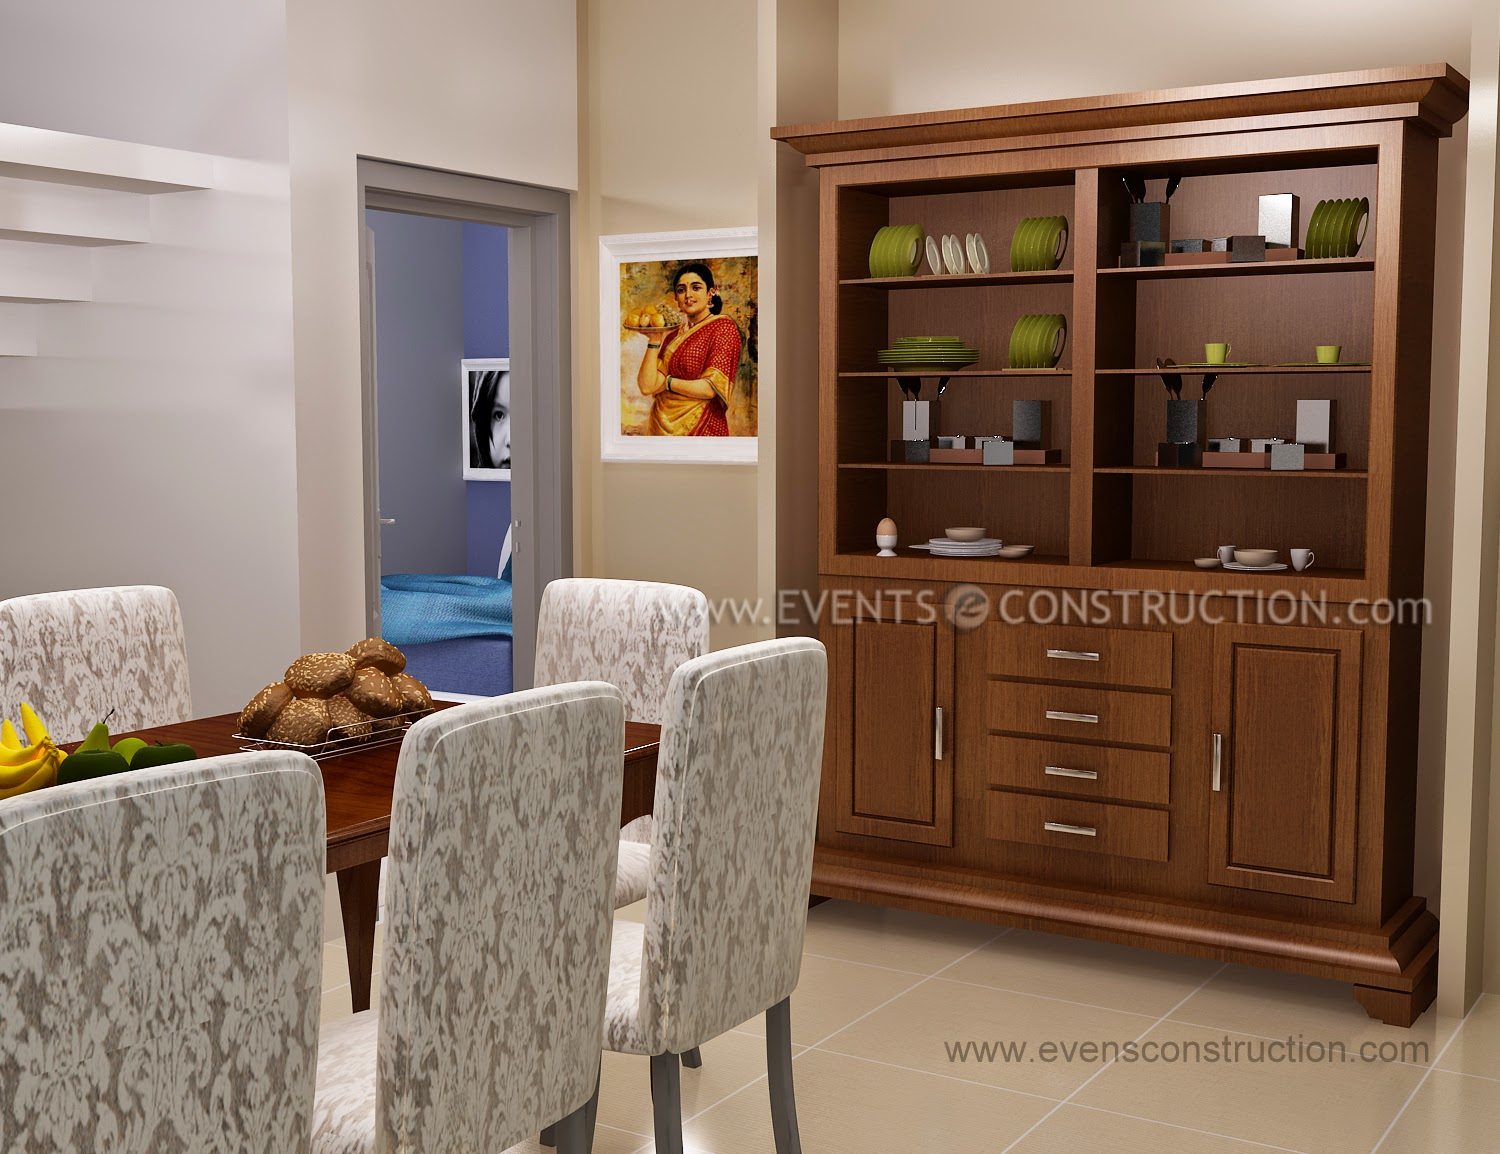 Evens Construction Pvt Ltd Simple Kerala Dining Room With